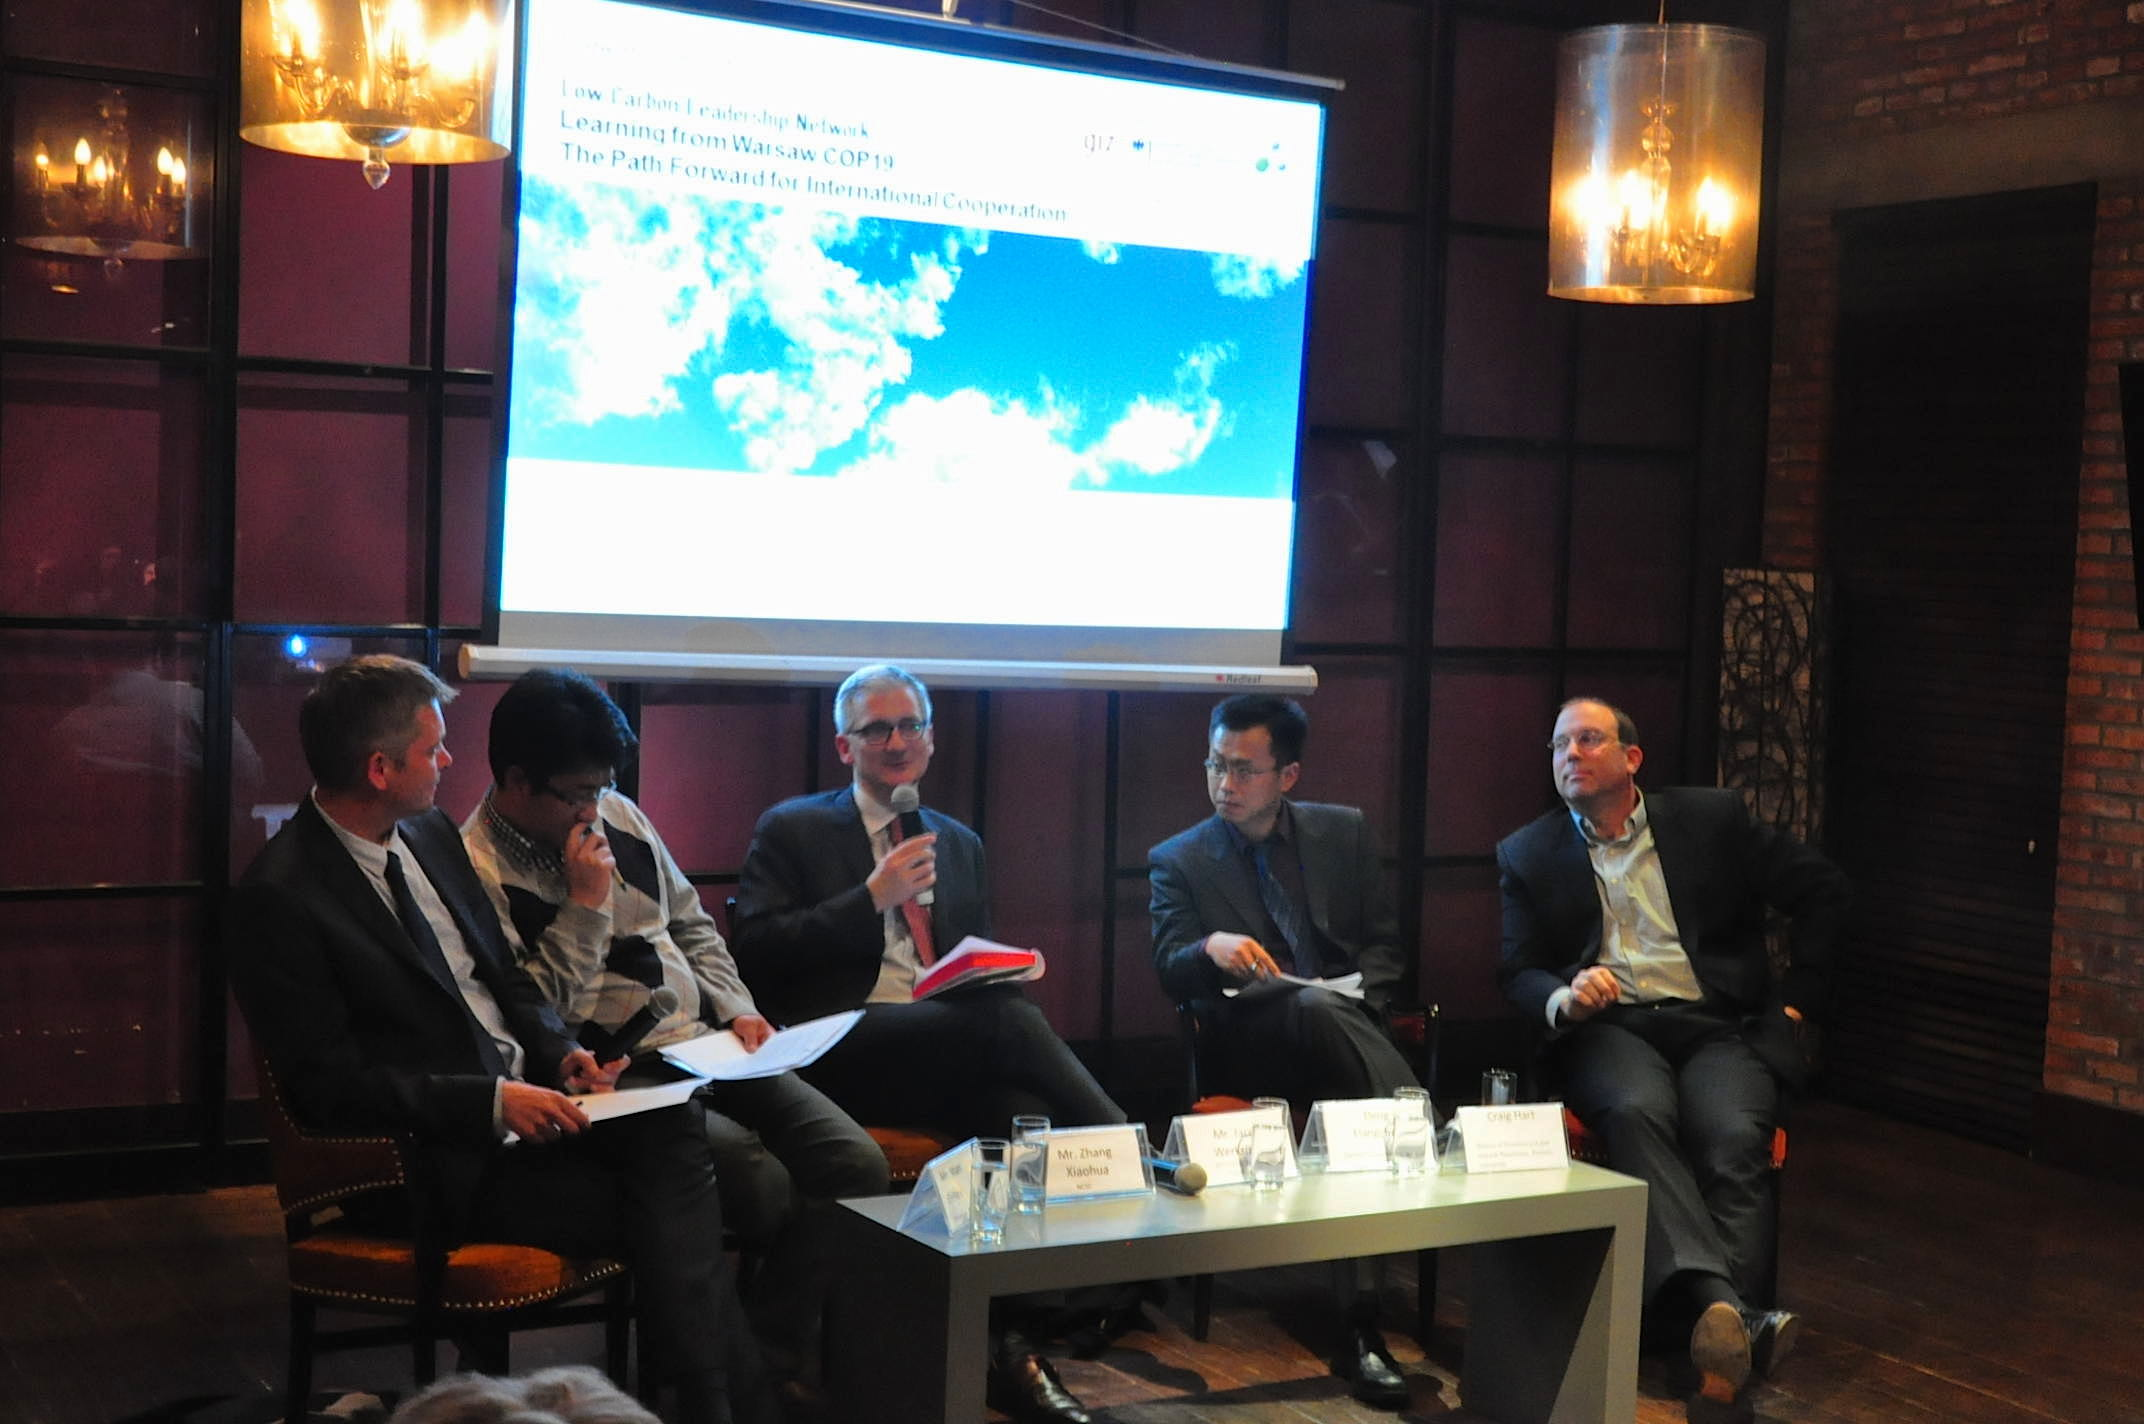 The Panel - From Left: Mr. Stian Reklev (Moderator - Thomson Reuters), Mr. Zhang Xiaohua (National Centre for Climate Change Strategy and International Cooperation), Mr. Jacob Werksman (European Commission), Mr. Deng Liangchun (WWF), Ass. Pr. Craig Hart (Renmin University)